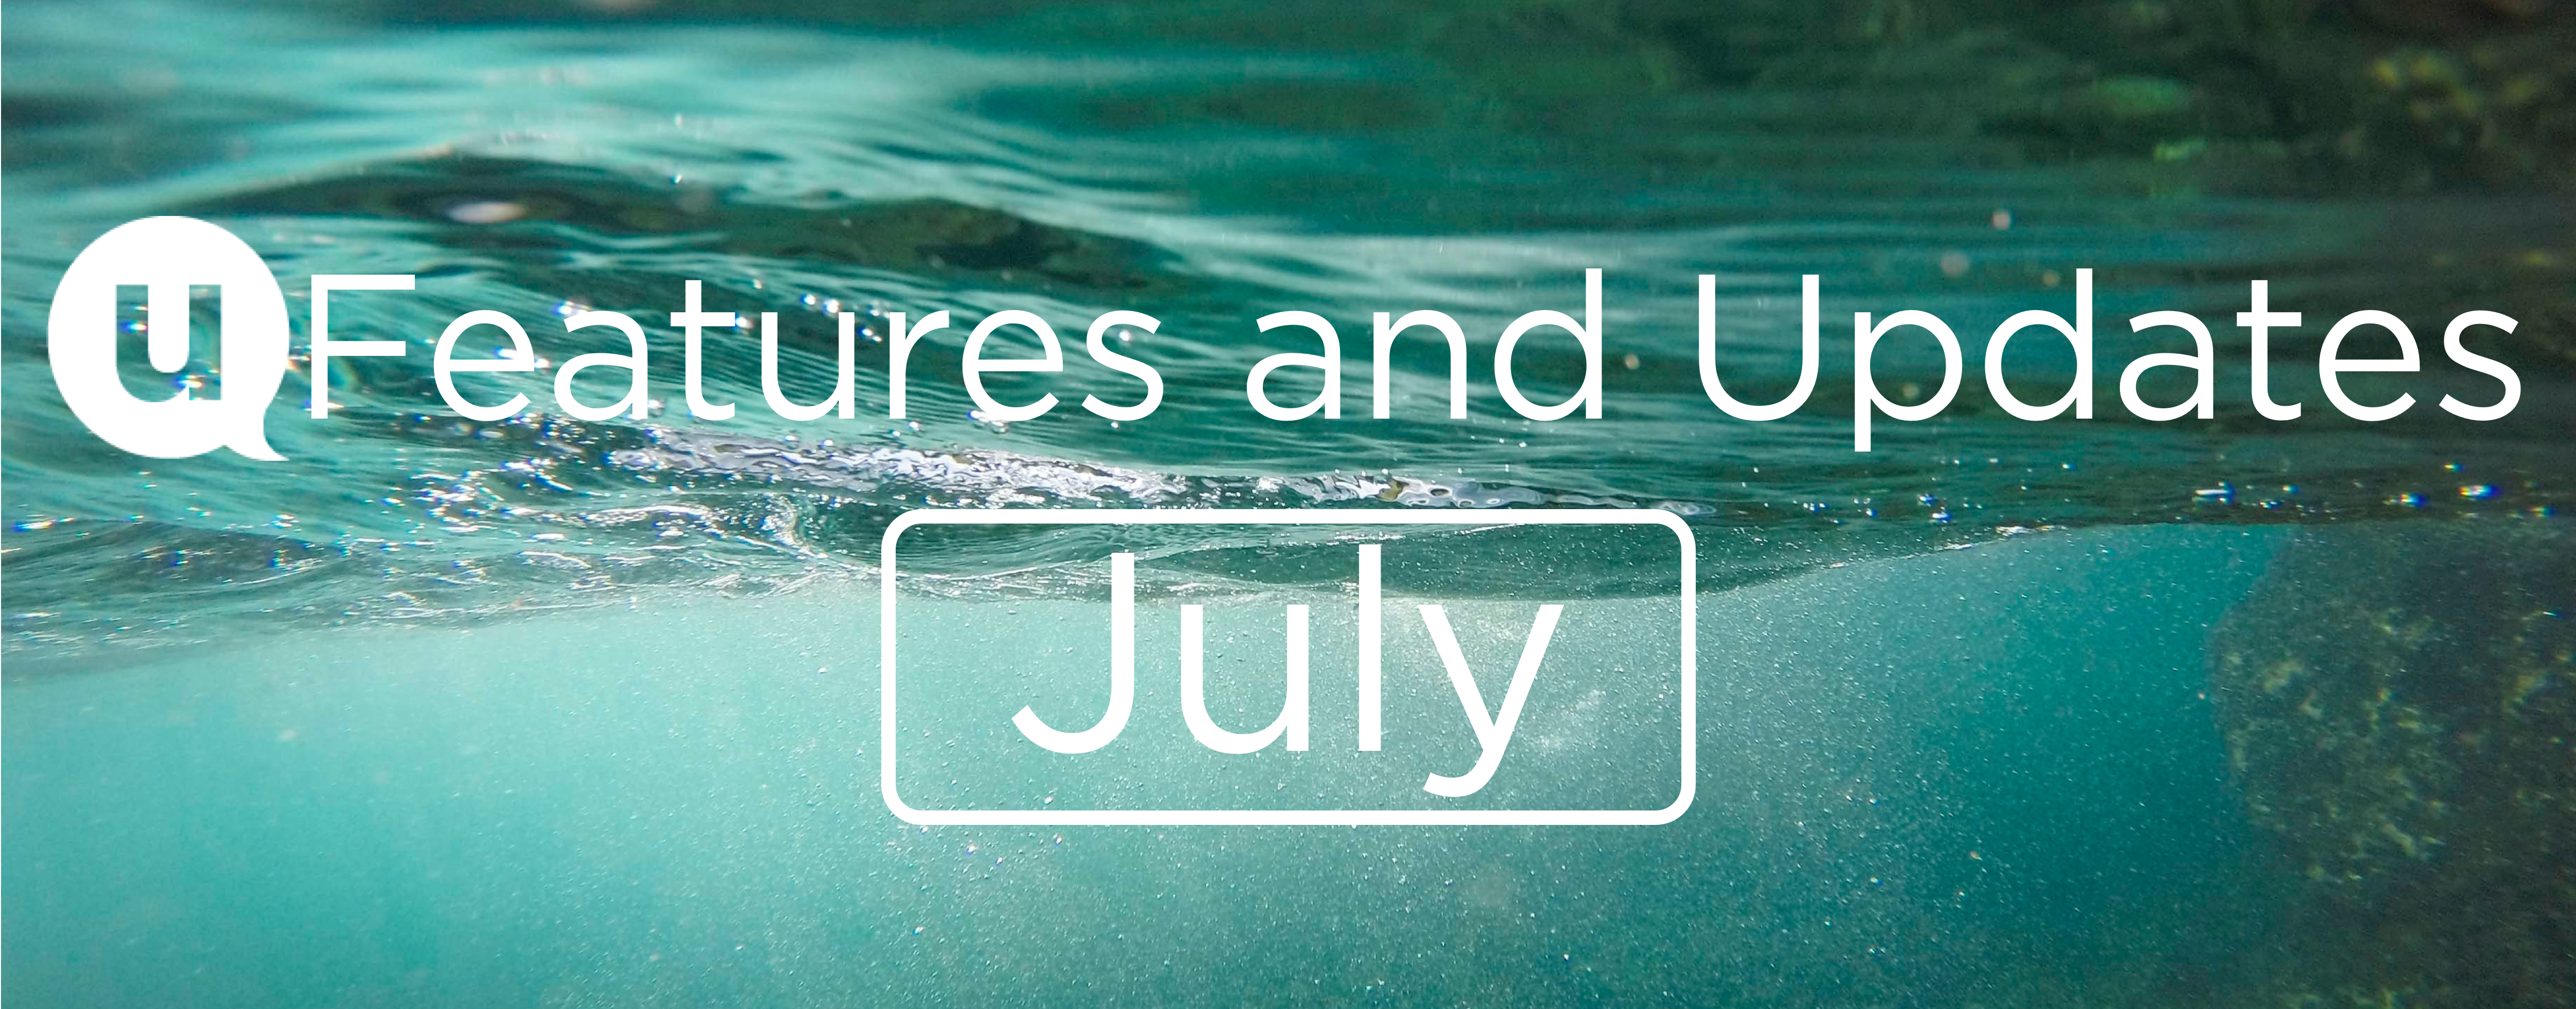 July 2020 Features and Updates